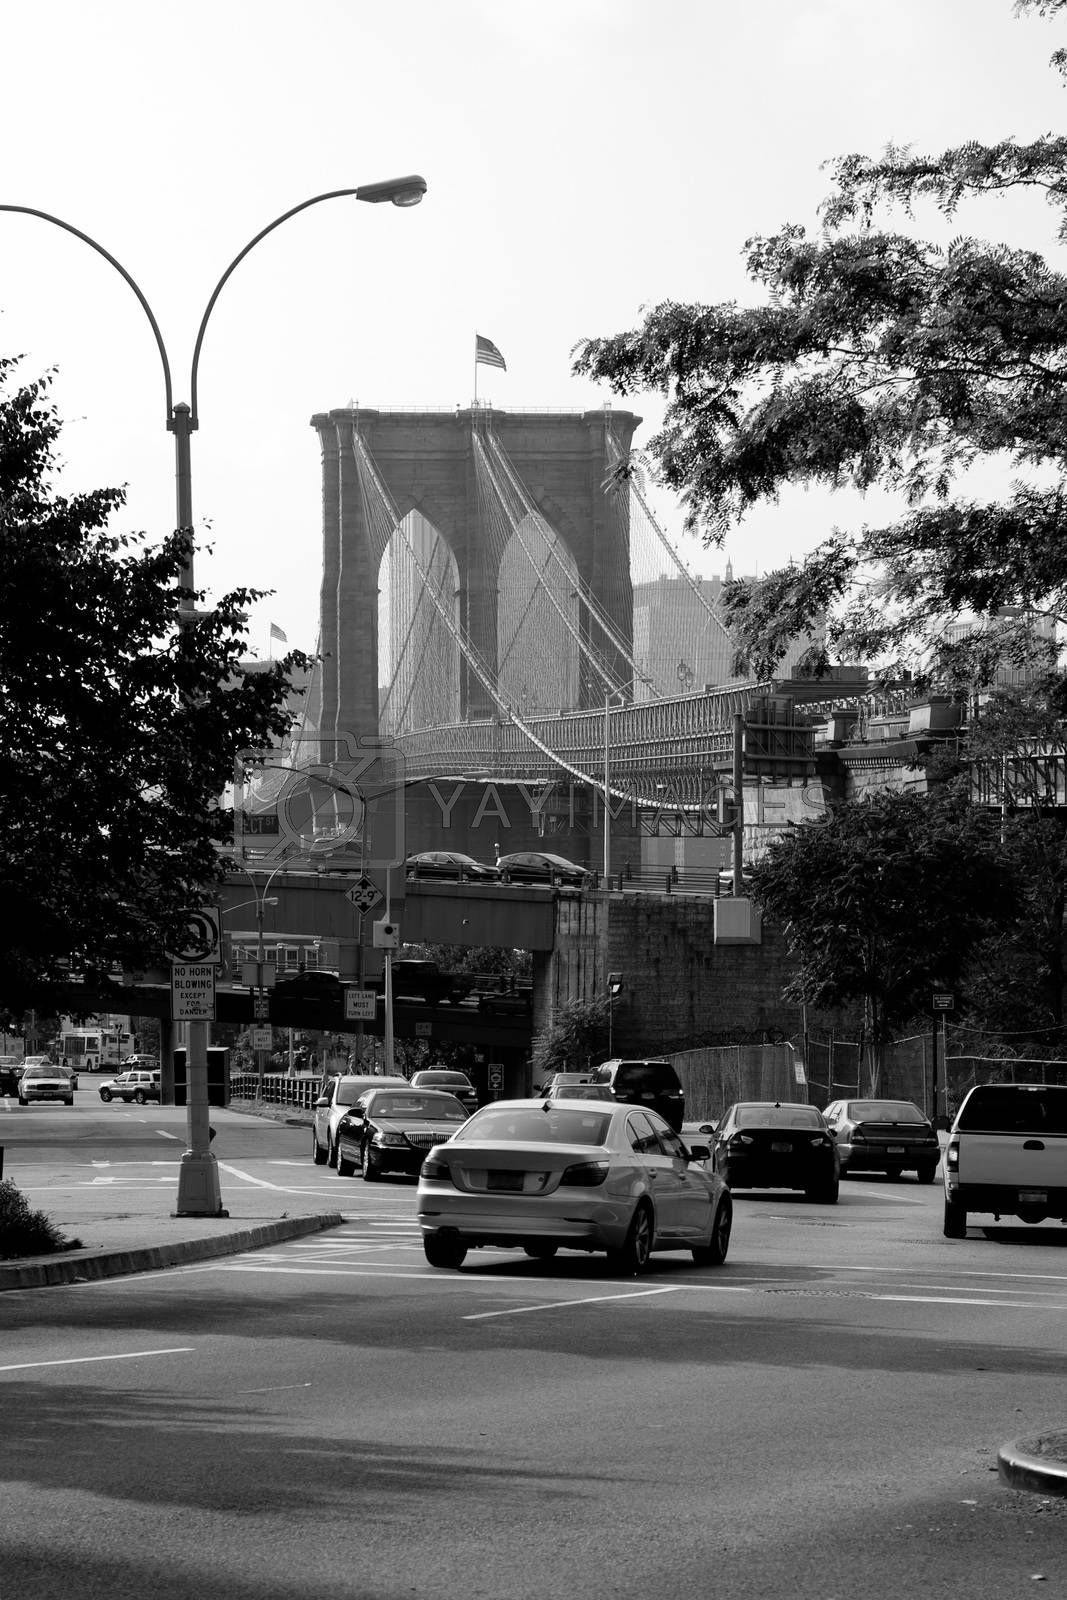 Brooklyn Bridge as seen from a rare street view in New York City.